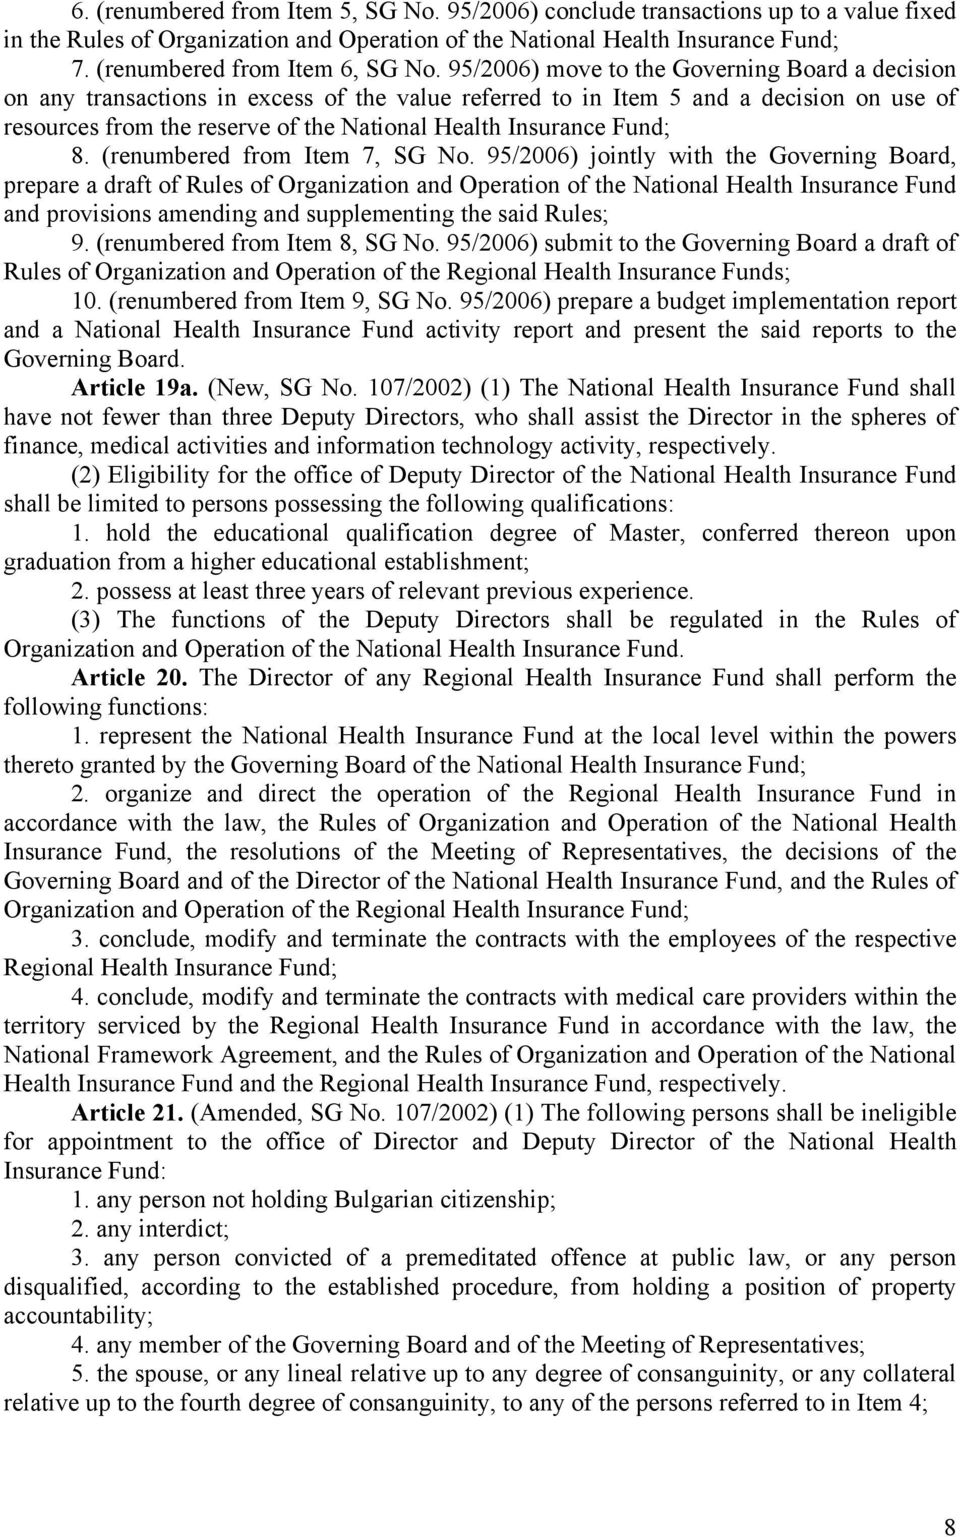 95/2006) move to the Governing Board a decision on any transactions in excess of the value referred to in Item 5 and a decision on use of resources from the reserve of the National Health Insurance